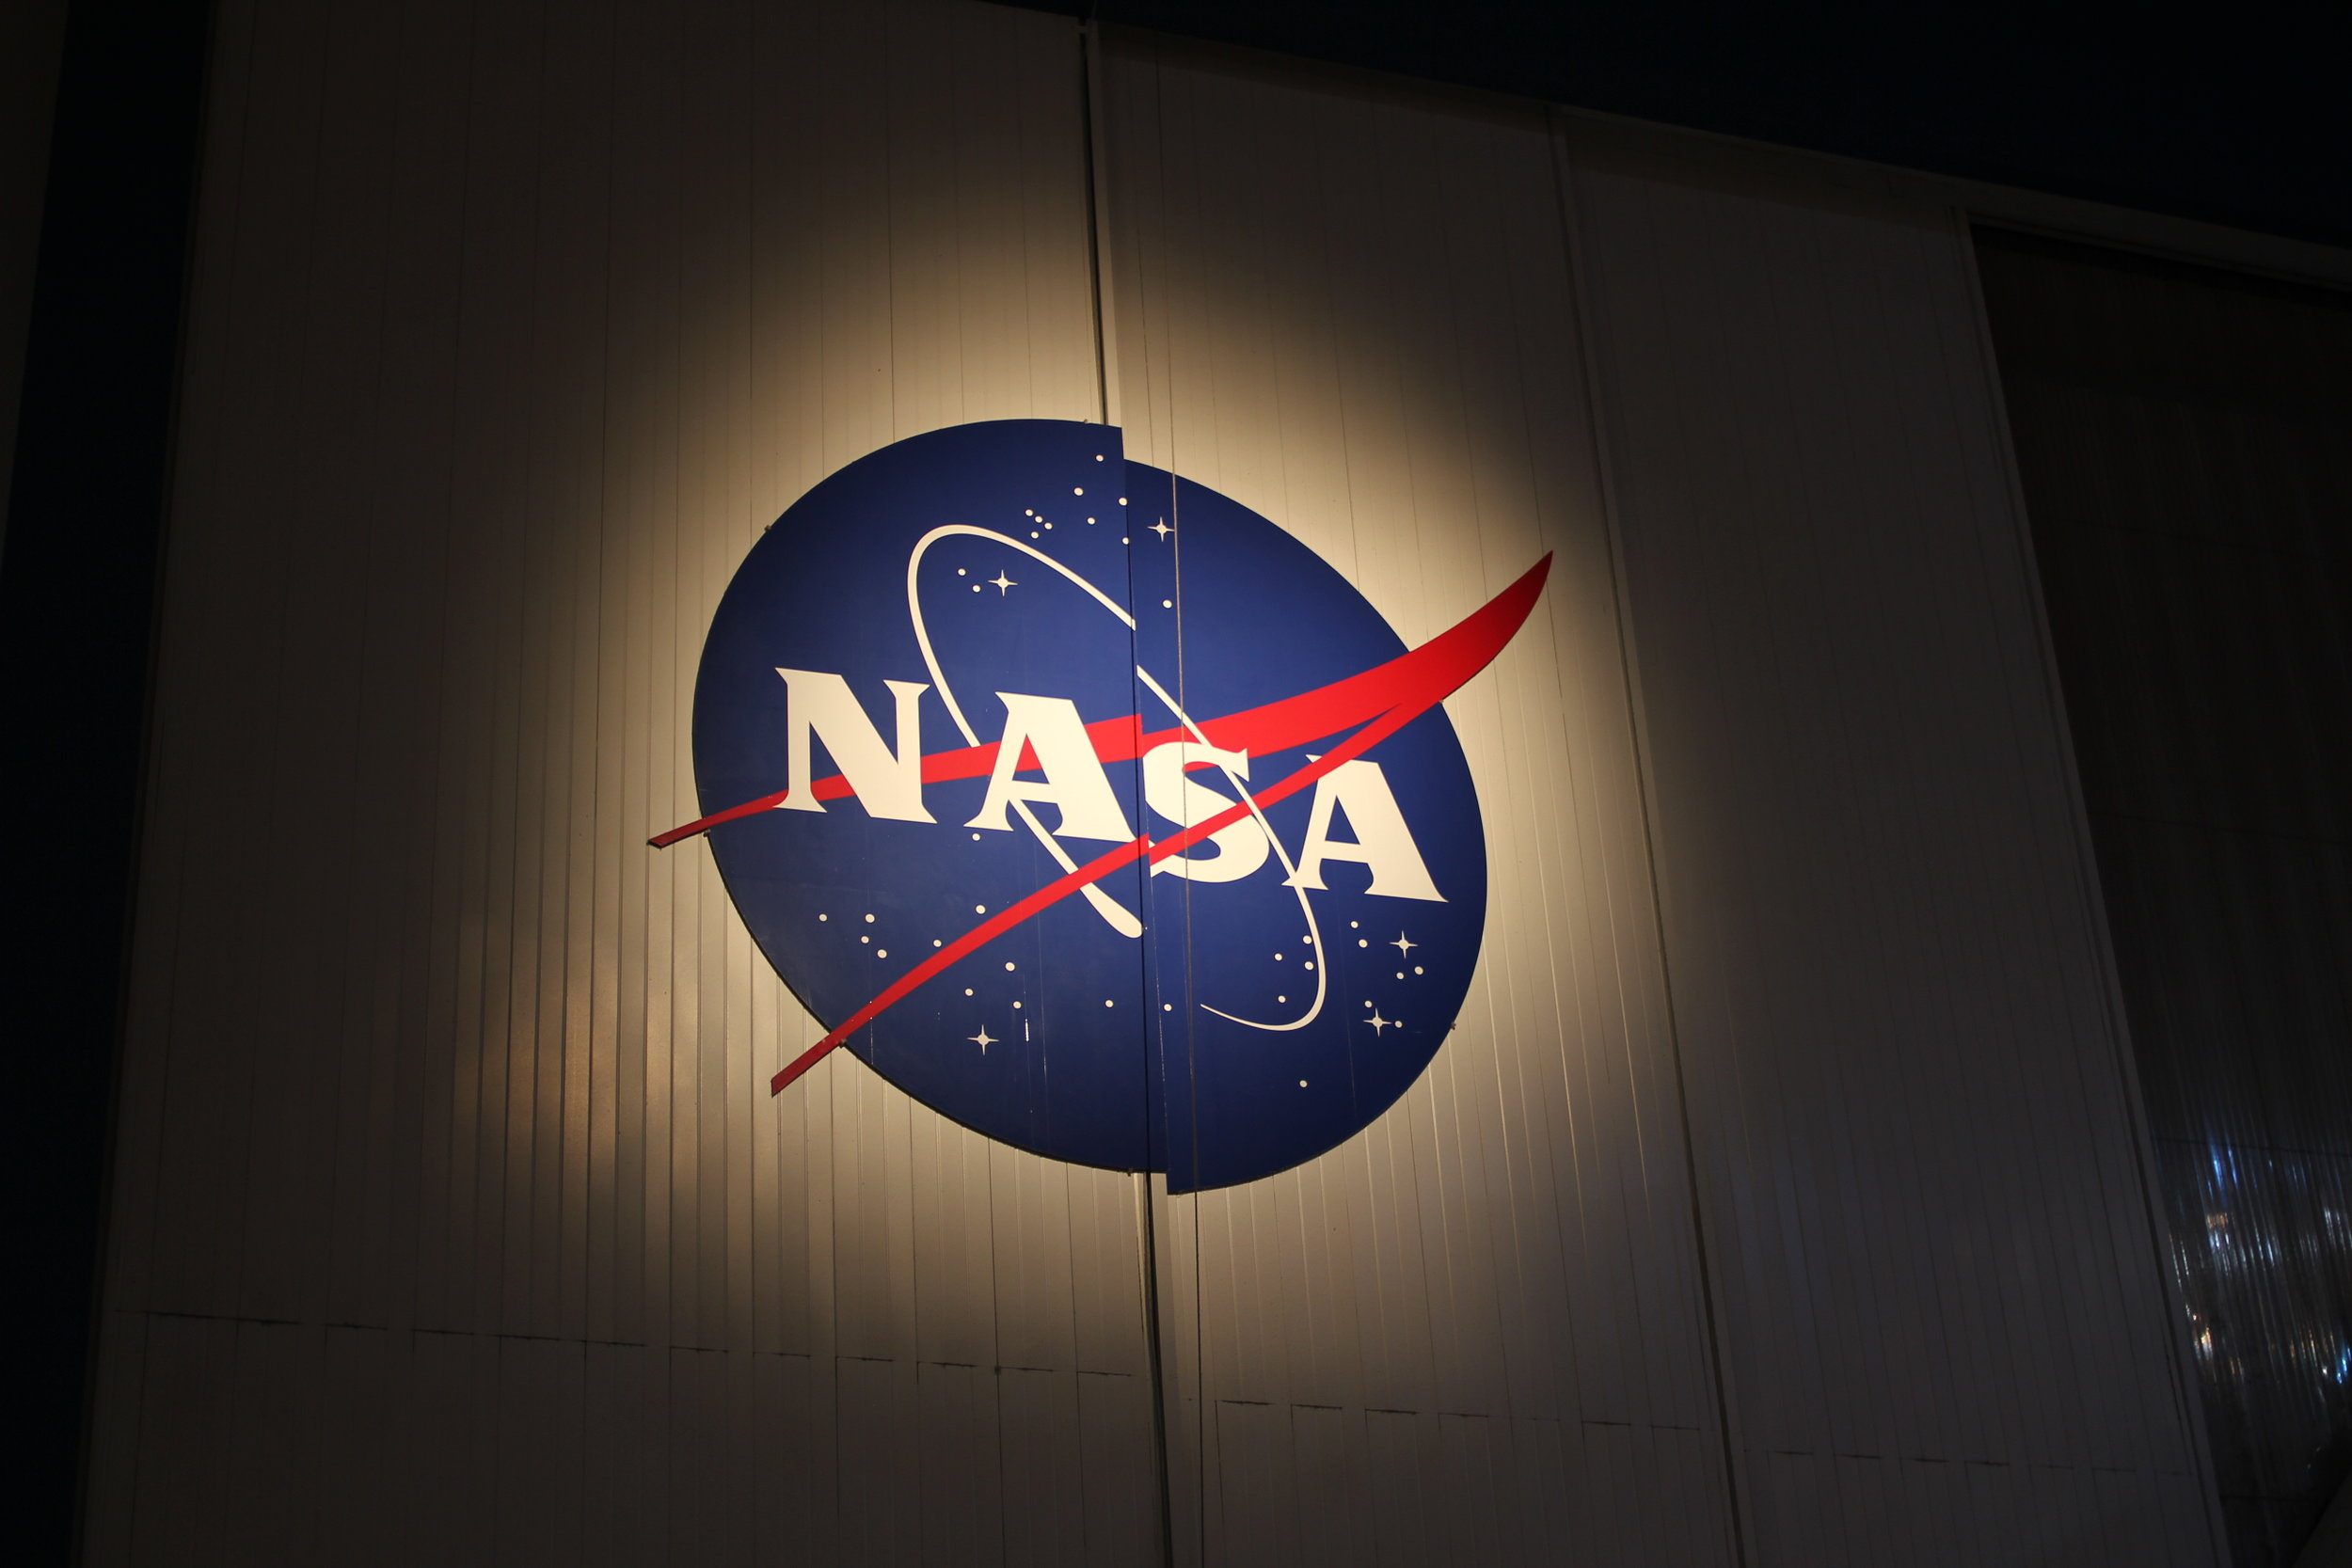 Recent studies conducted by NASA hope to improve our knowledge on the effects of human health with space travel. ( Billy Brown /Flickr, Creative Commons)